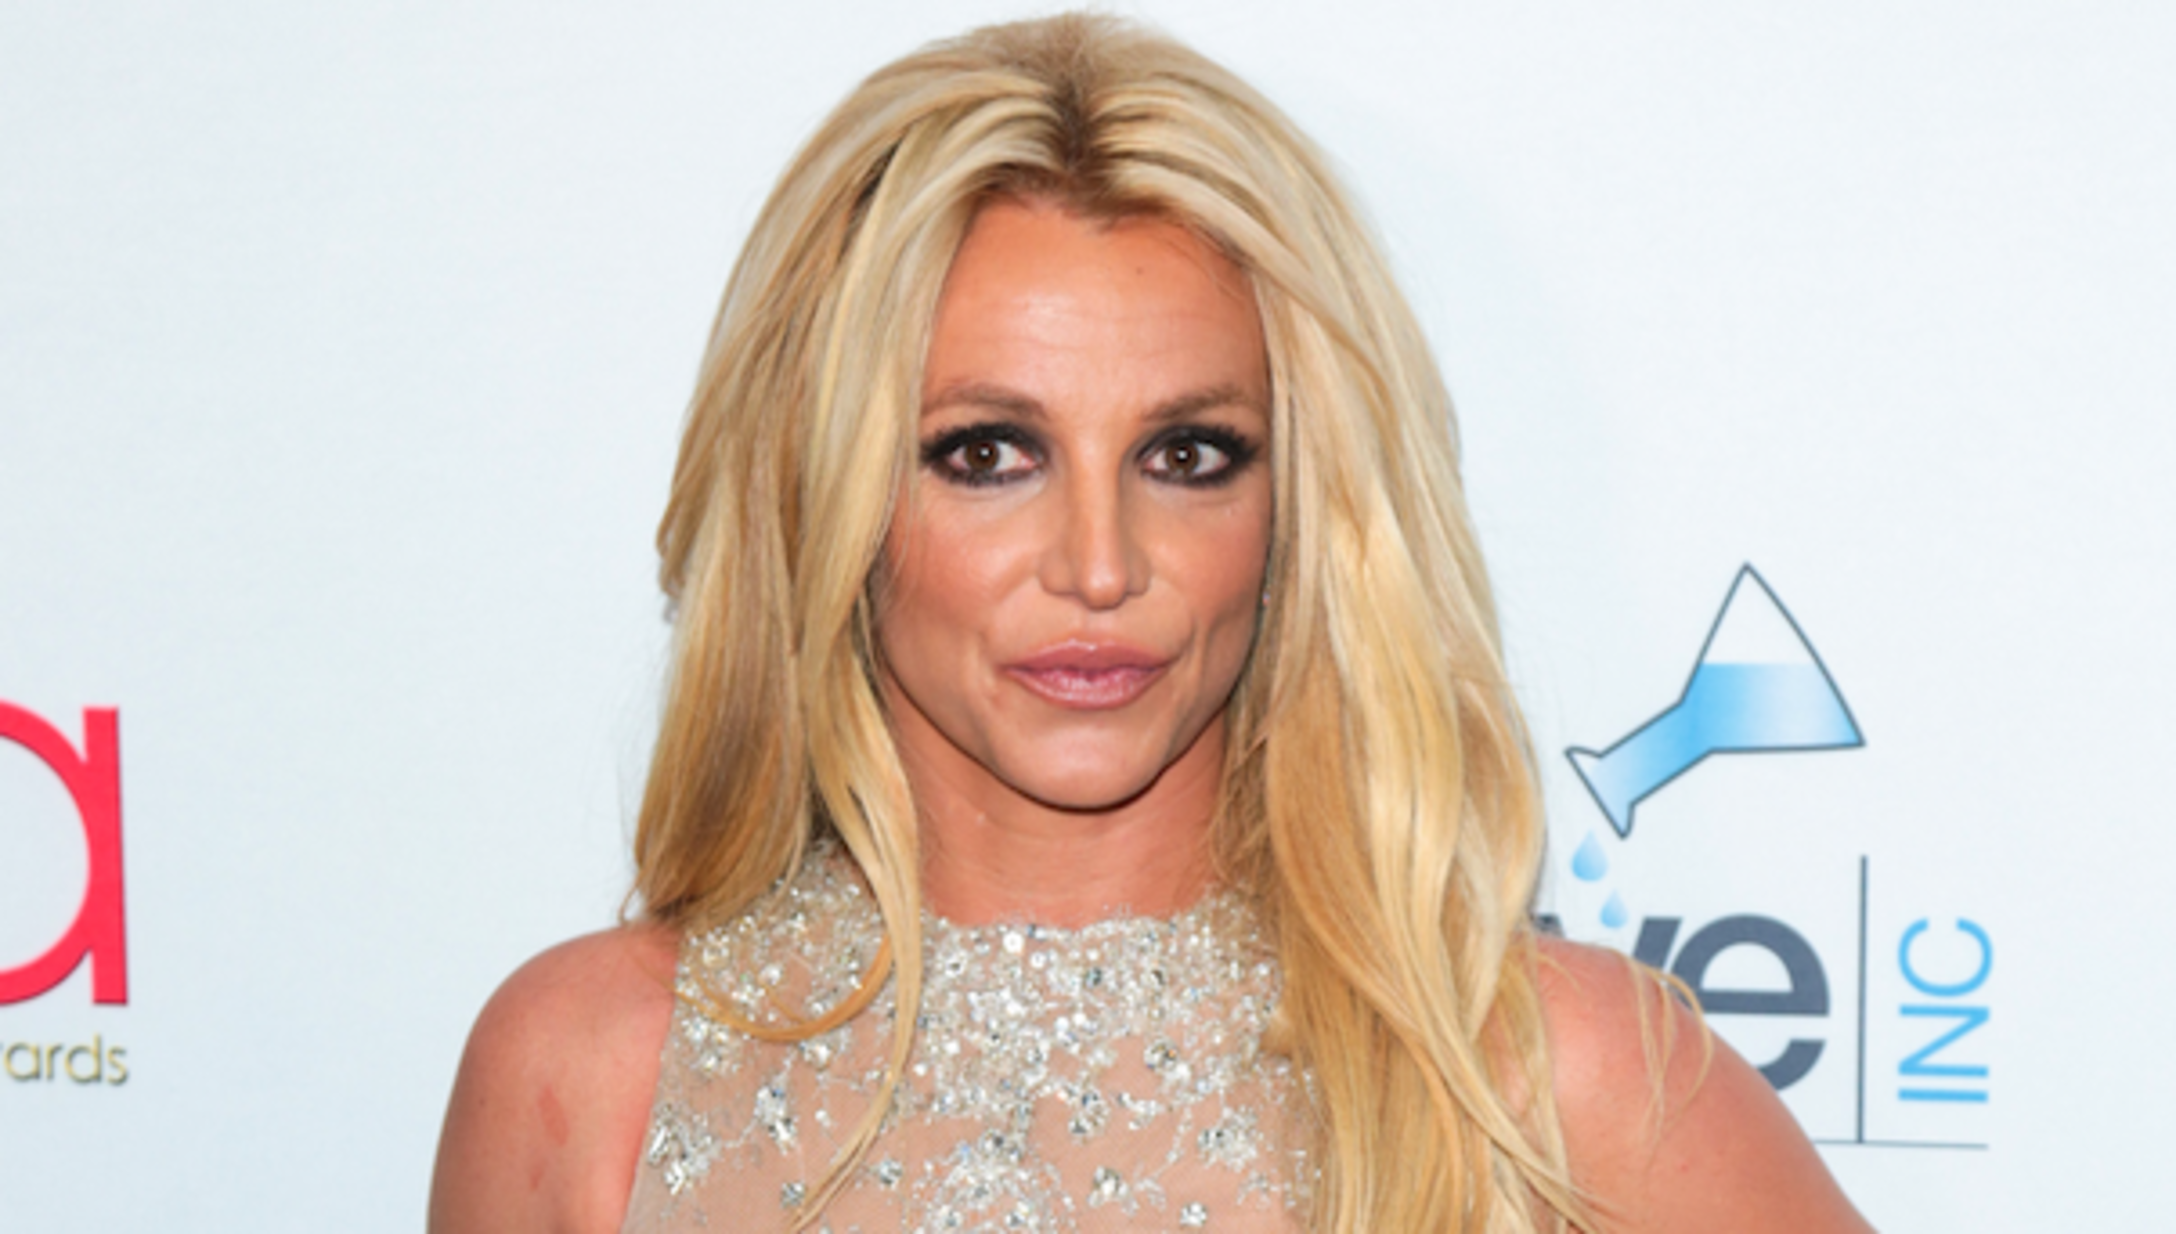 Britney Spears shows off ripped body after recent fitness binge